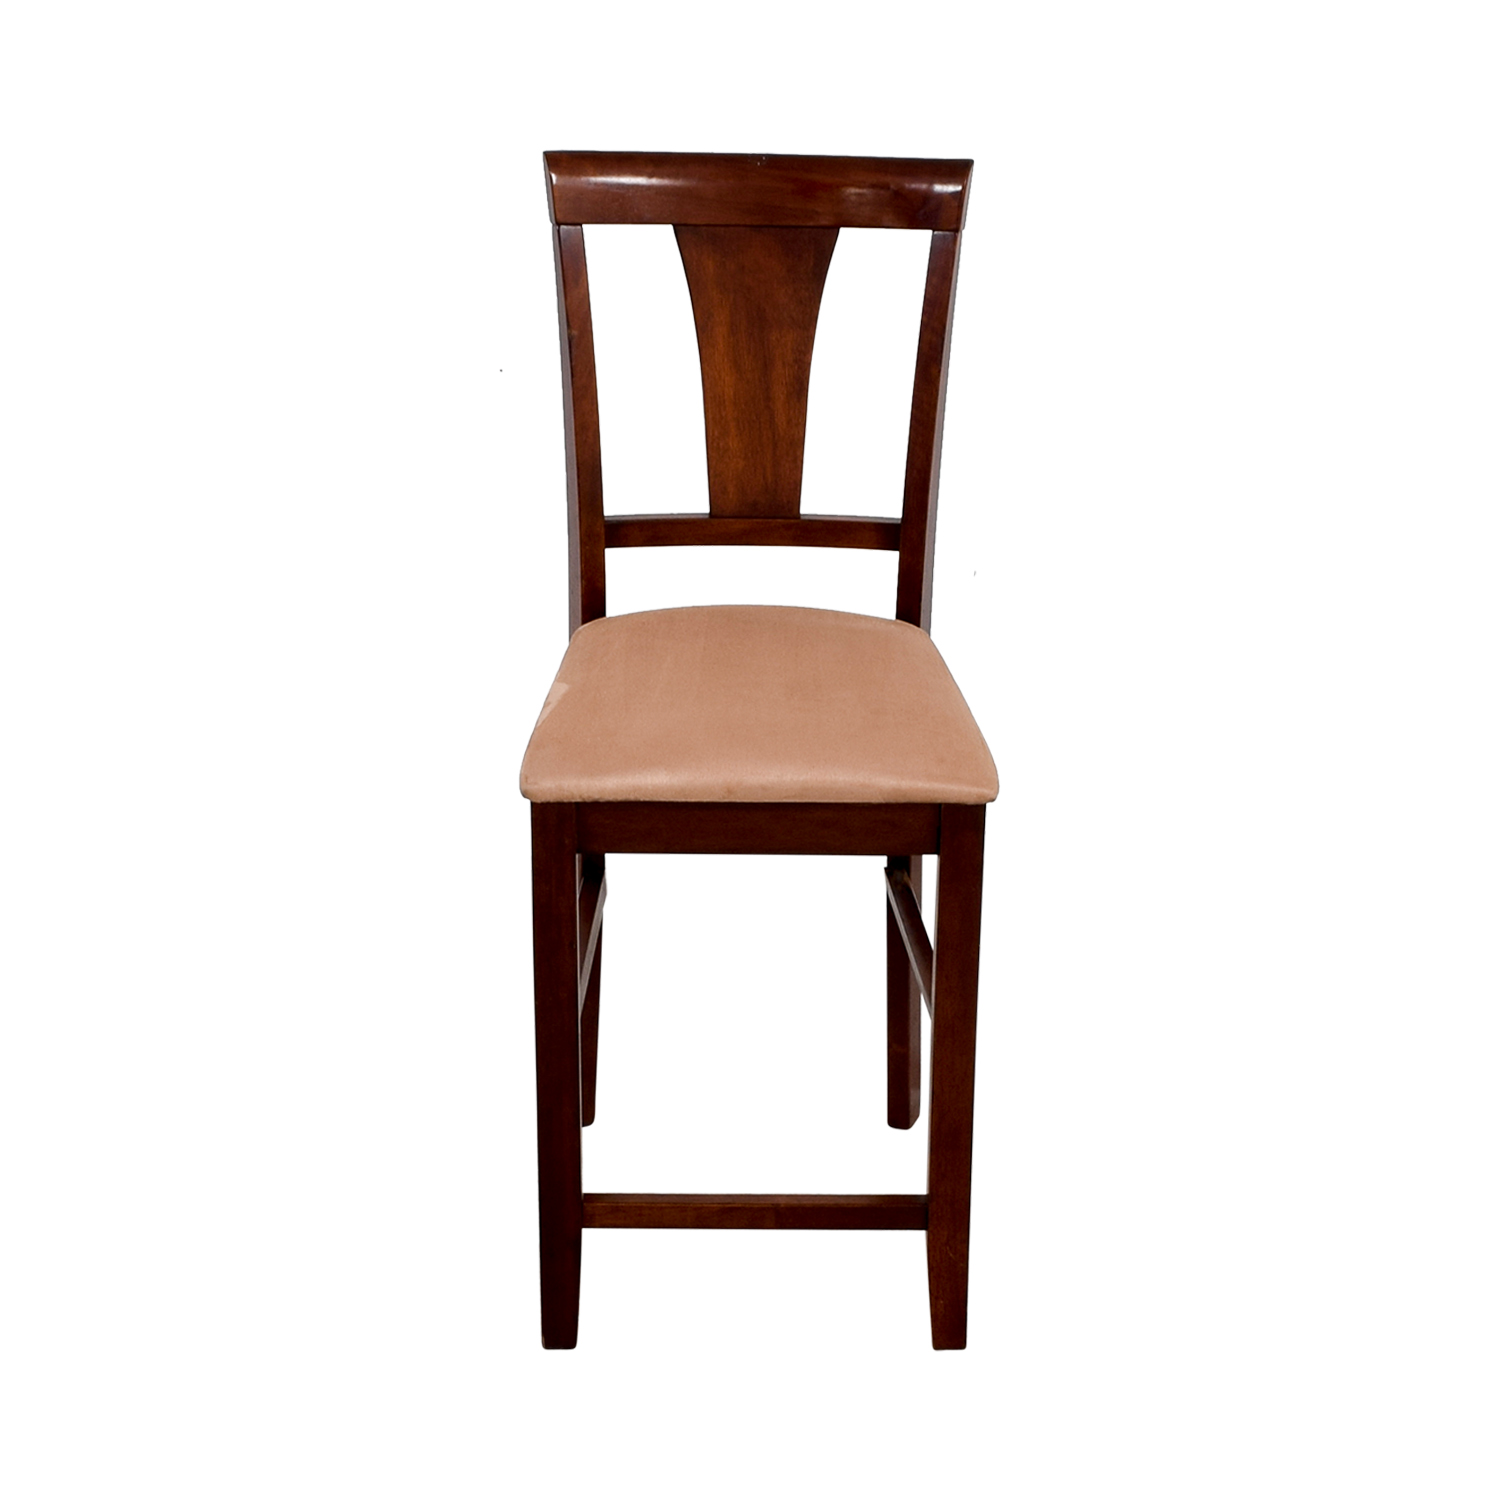 ... Buy Light Cherry Wood Counter Height Chair With Padded Seat Chairs ...